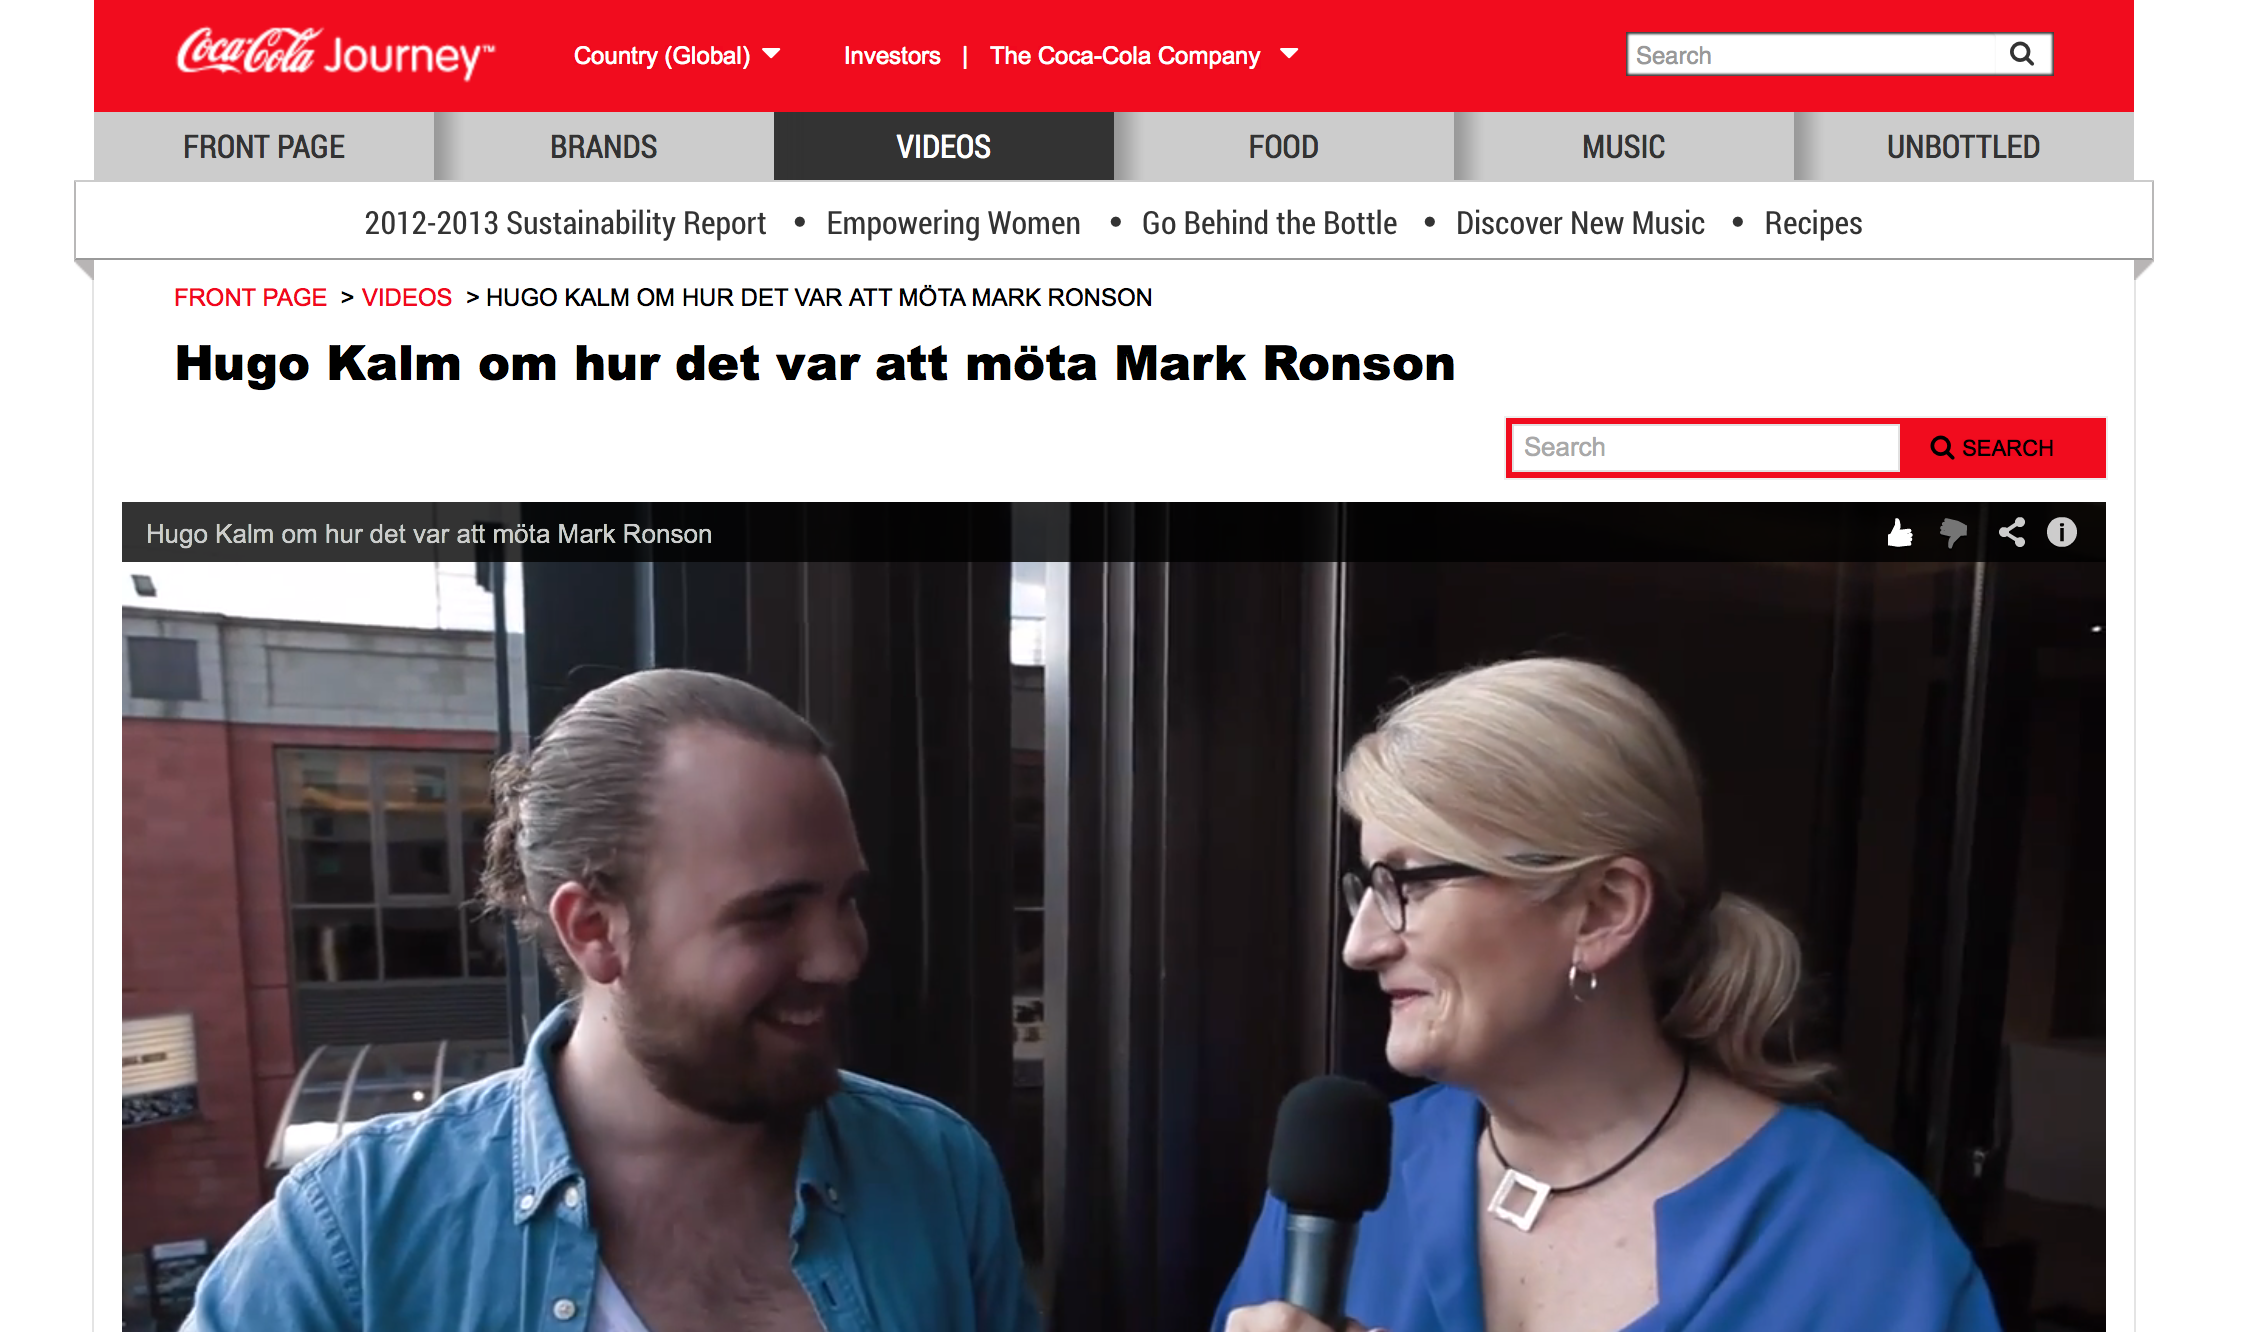 Video about meeting Mark Ronson, by Coca-Cola